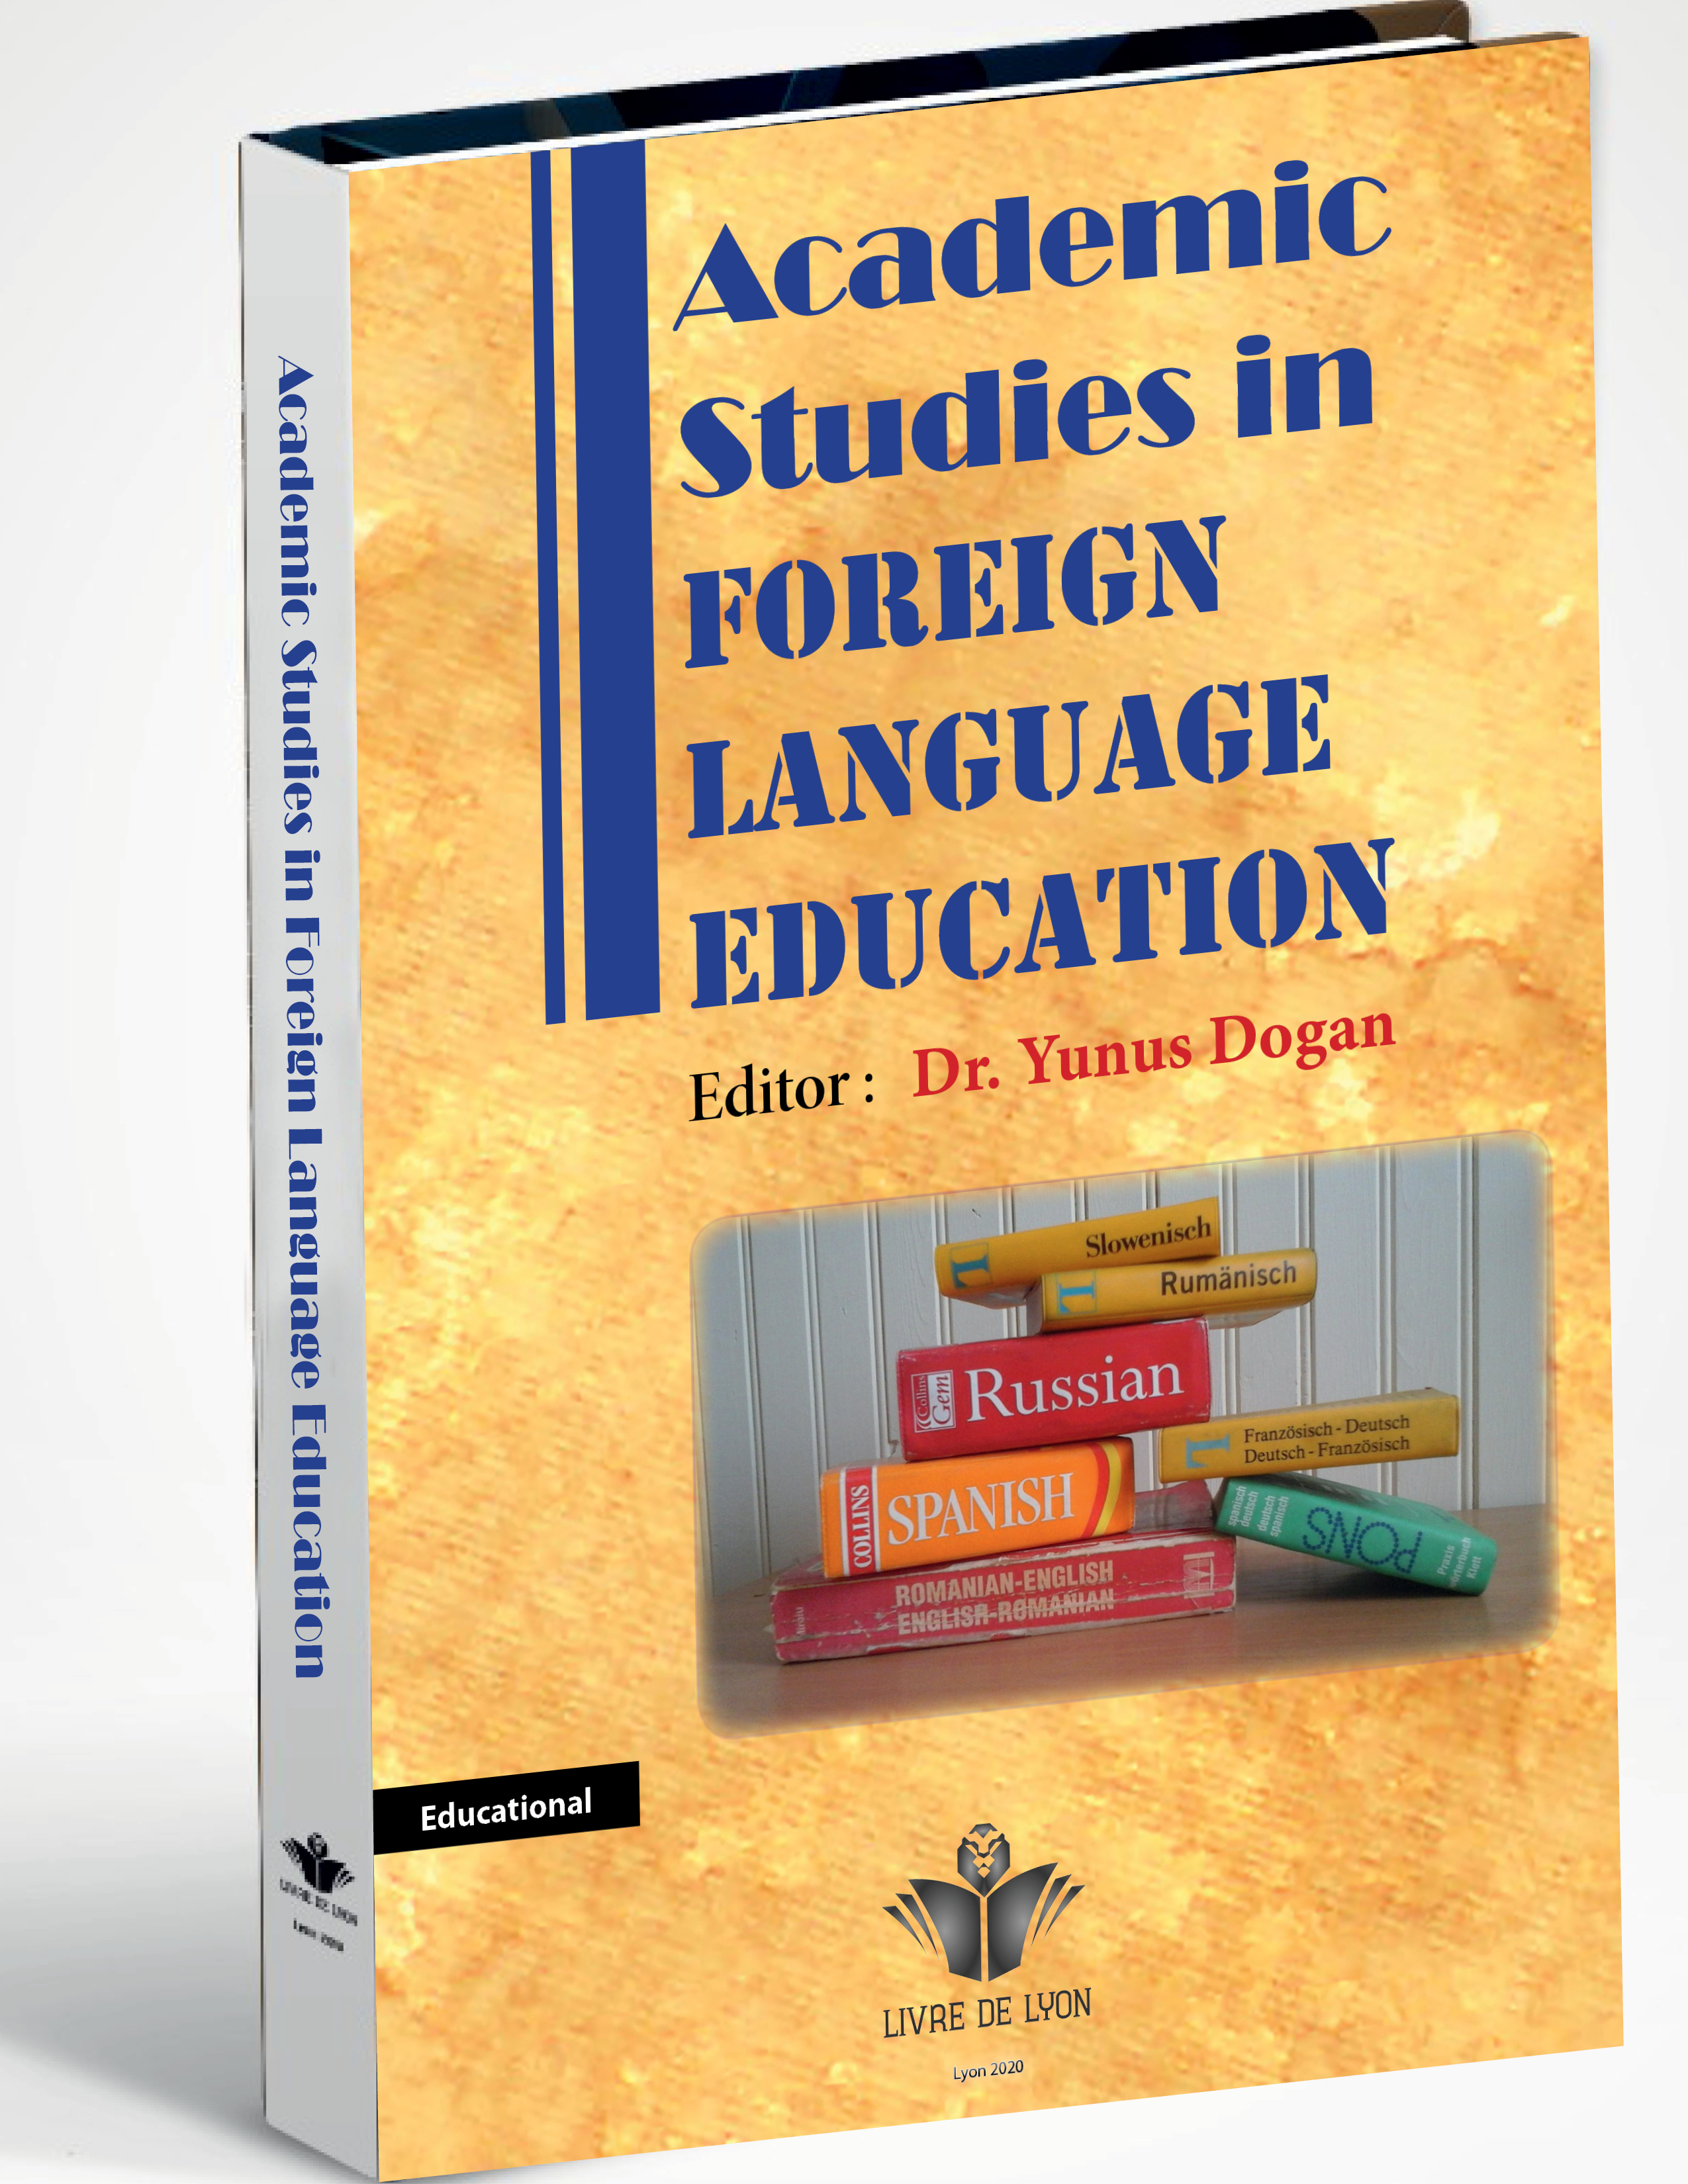 Academic Studies in Foreign Language Education